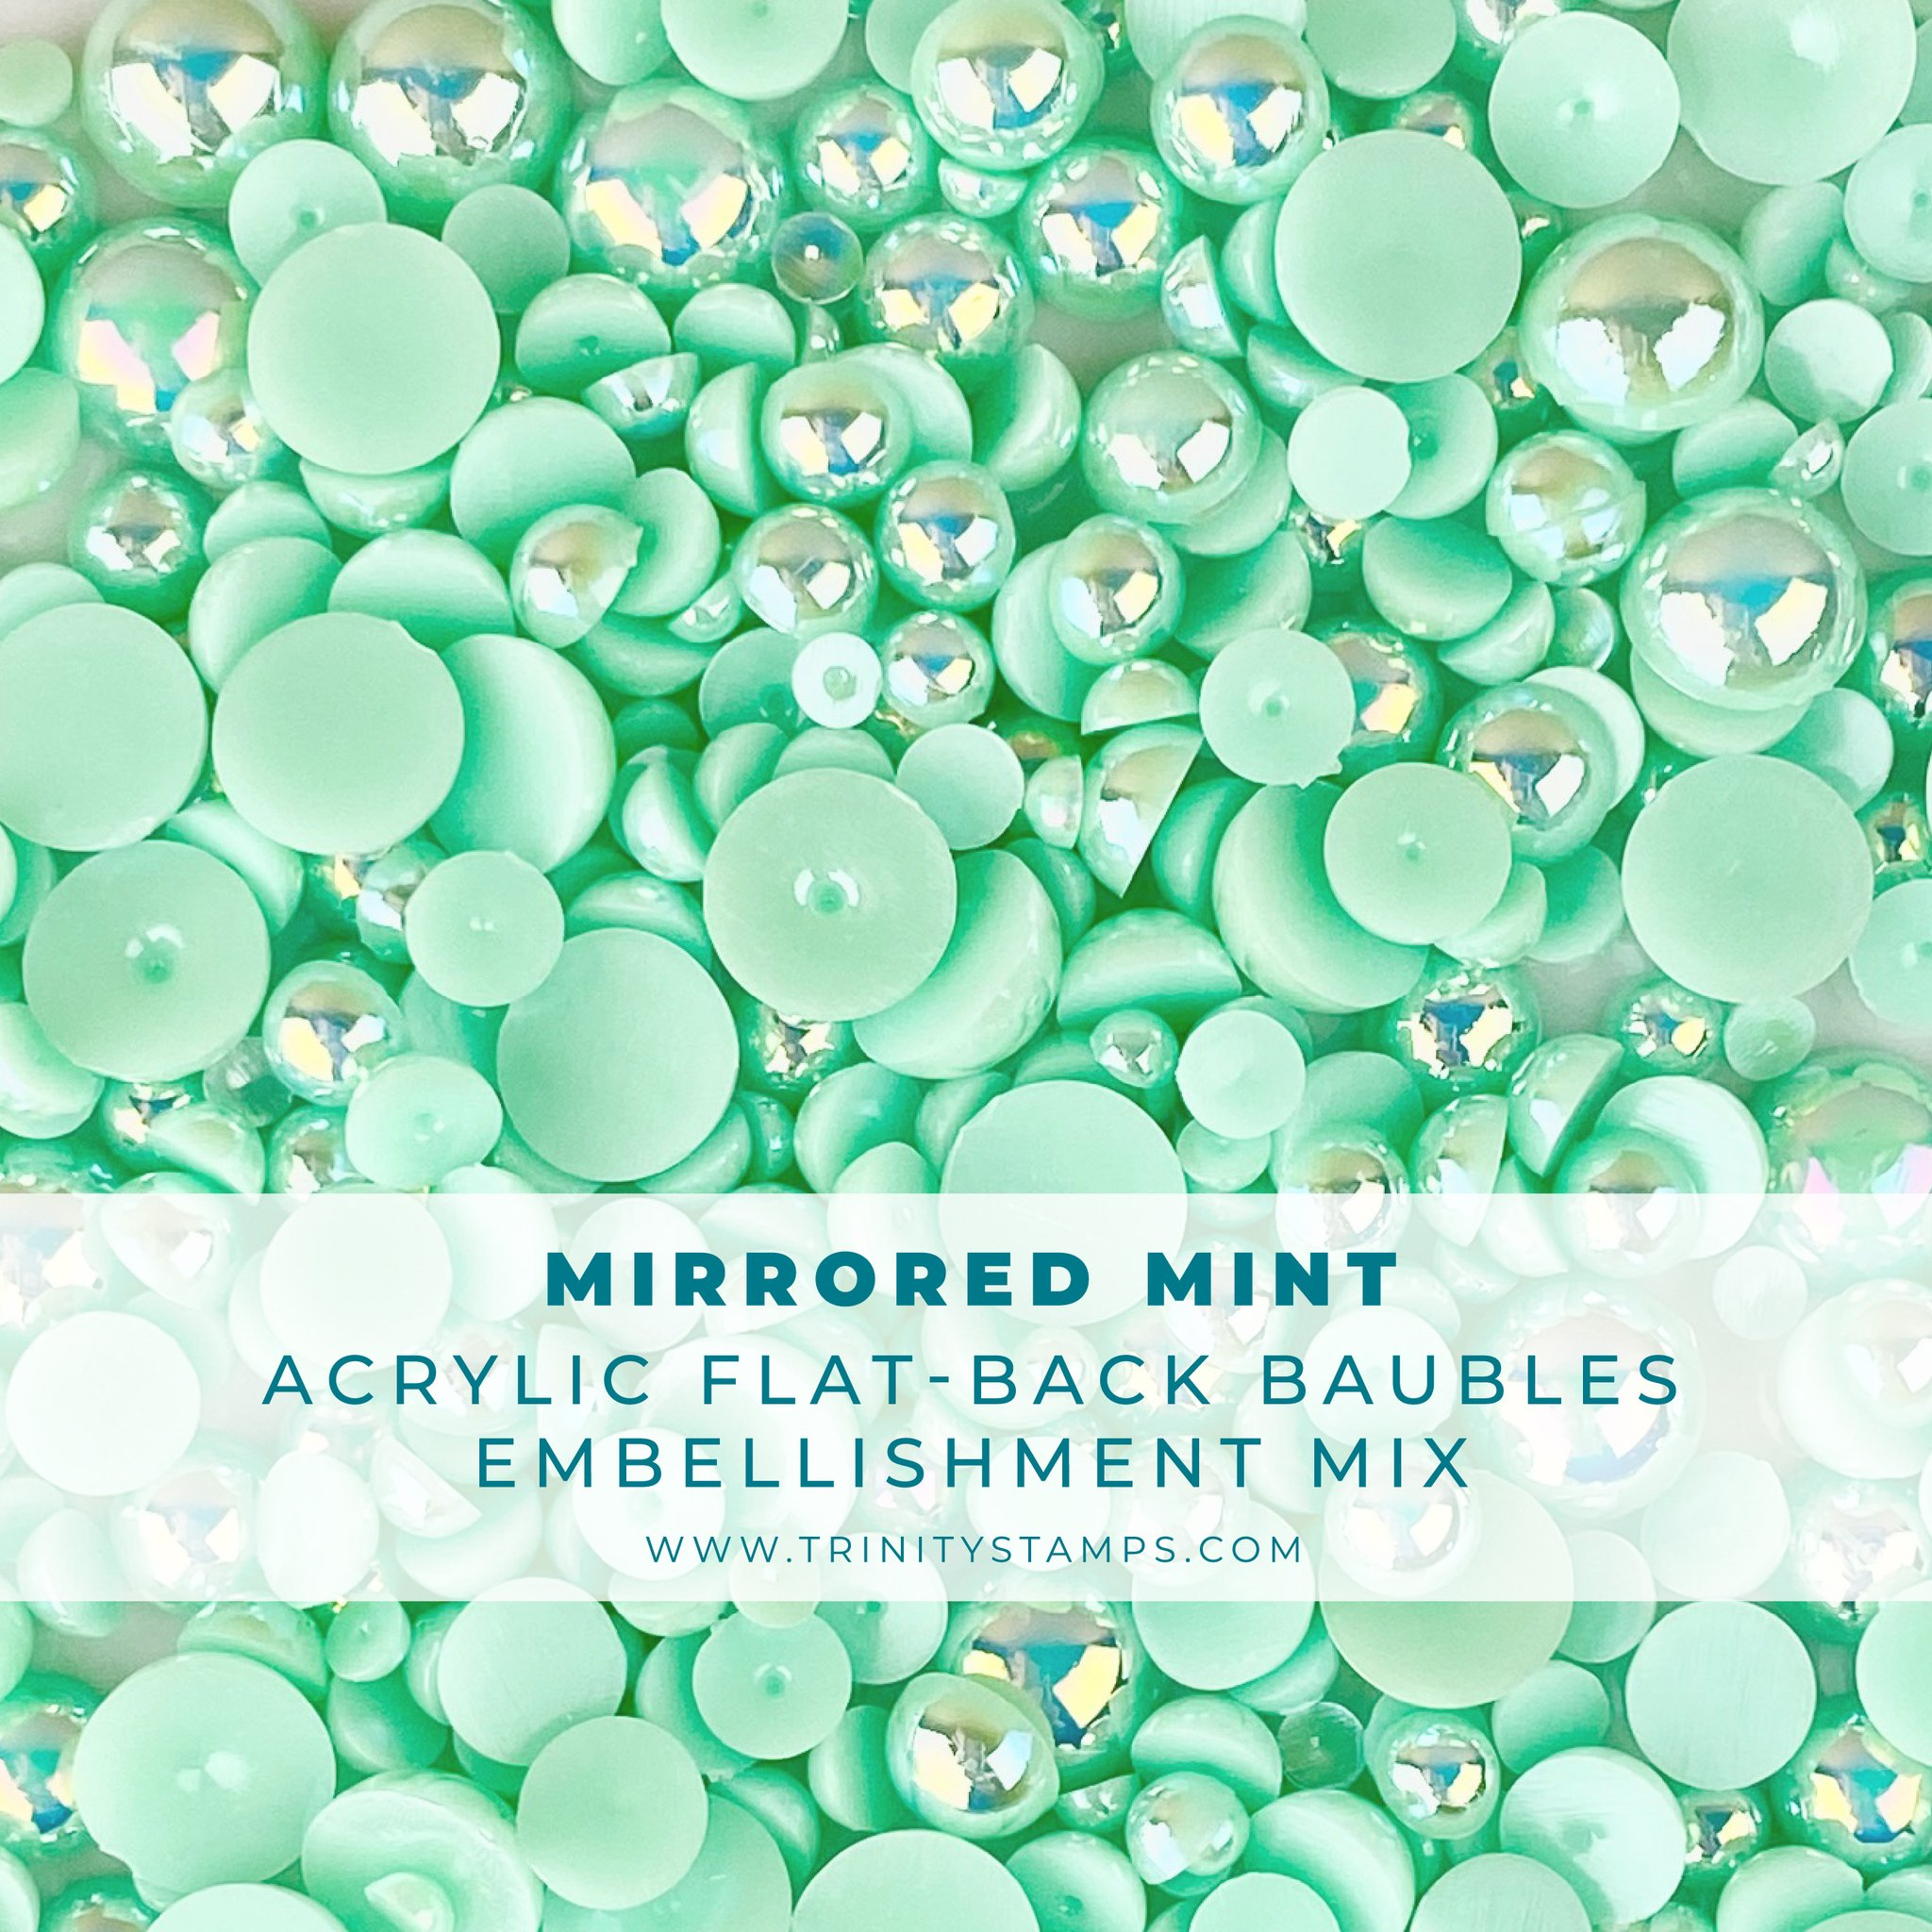 *NEW* - Trinity Stamps - Mirrored Mint Baubles Embellishment Mix